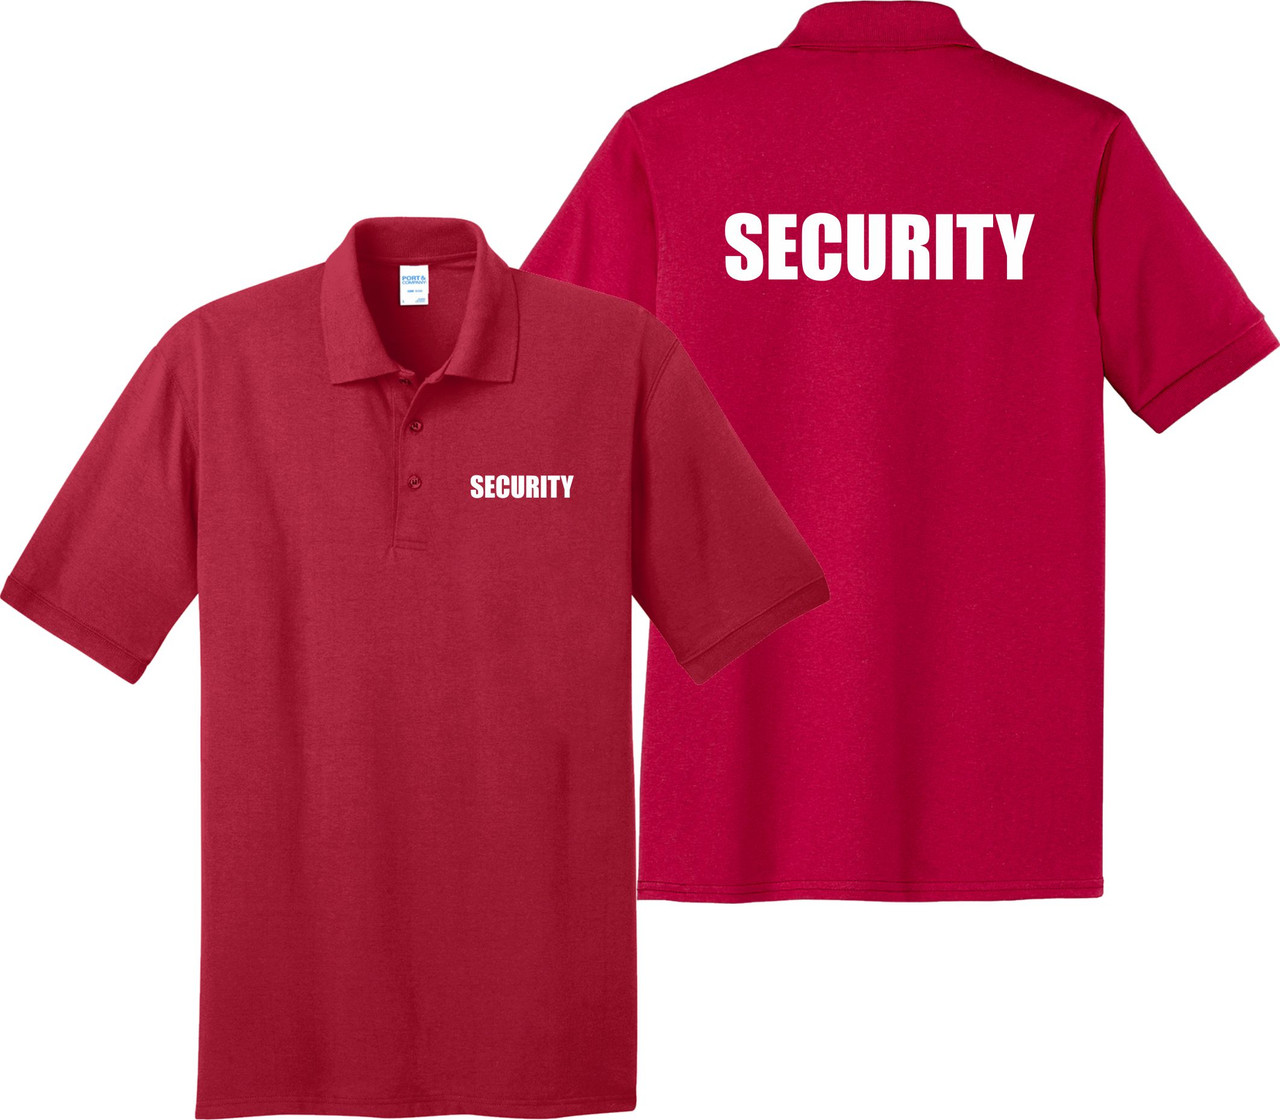 Red Security Polo Shirt.  Great for security guard shirts.